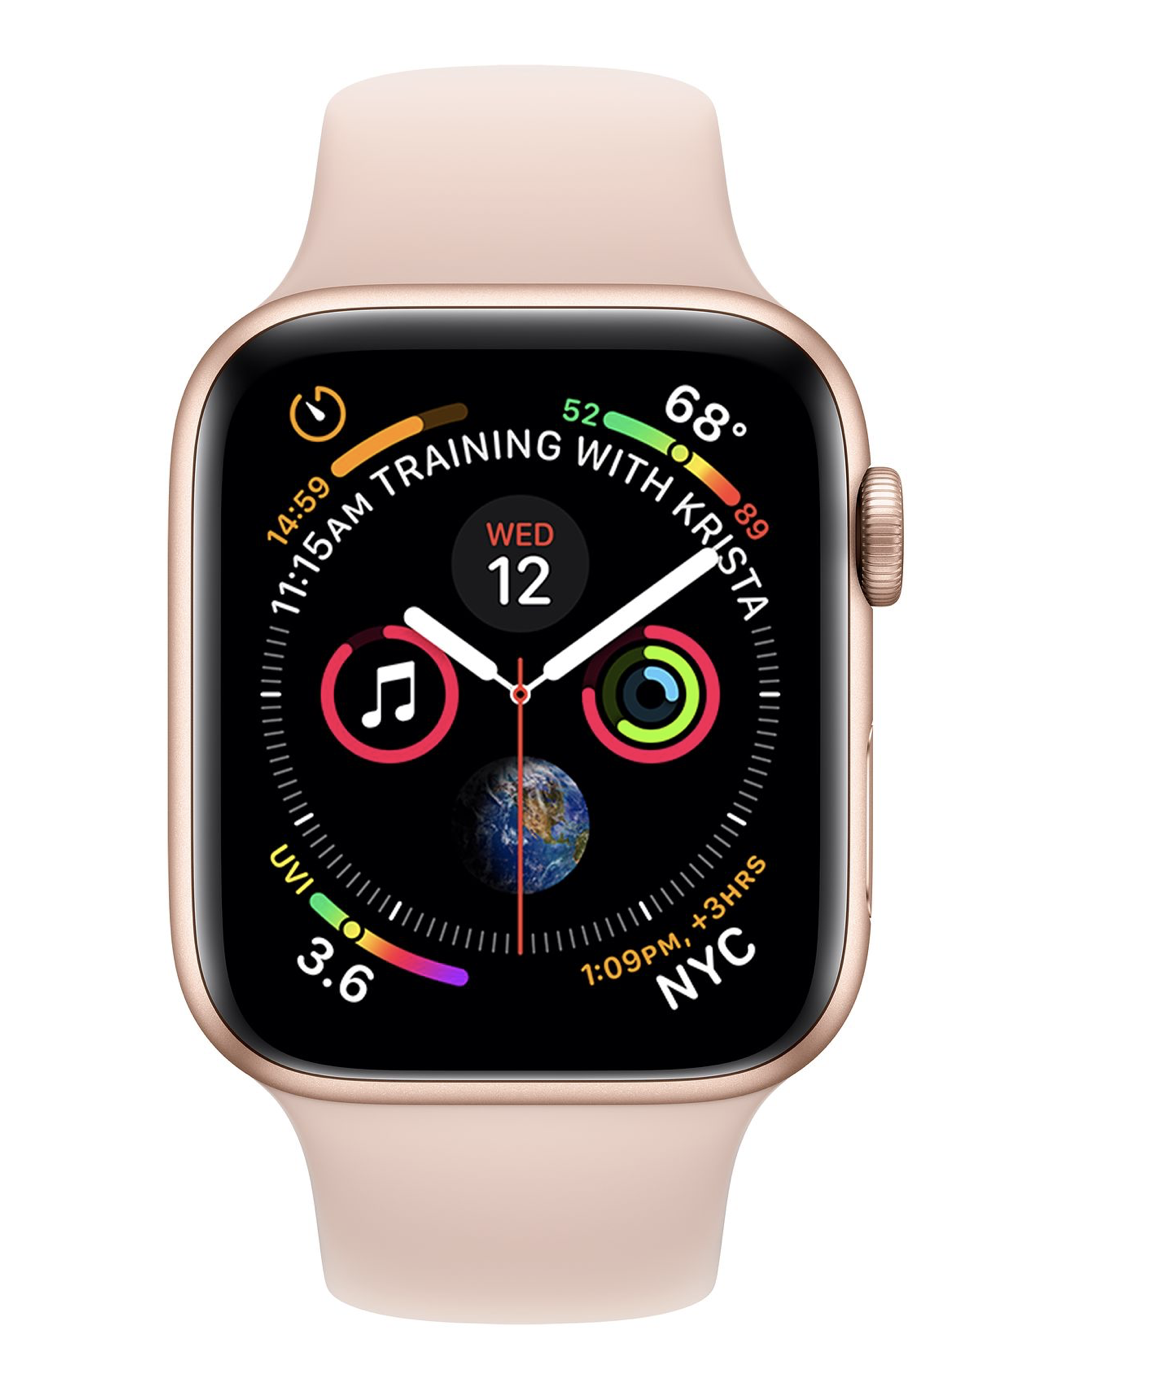 Apple Watch - I might be an Apple junkie… I'm working on it. The new features that come along with the Apple Watch are astounding. The health features and its integration with the iPhone will get you started off on the right foot in January!